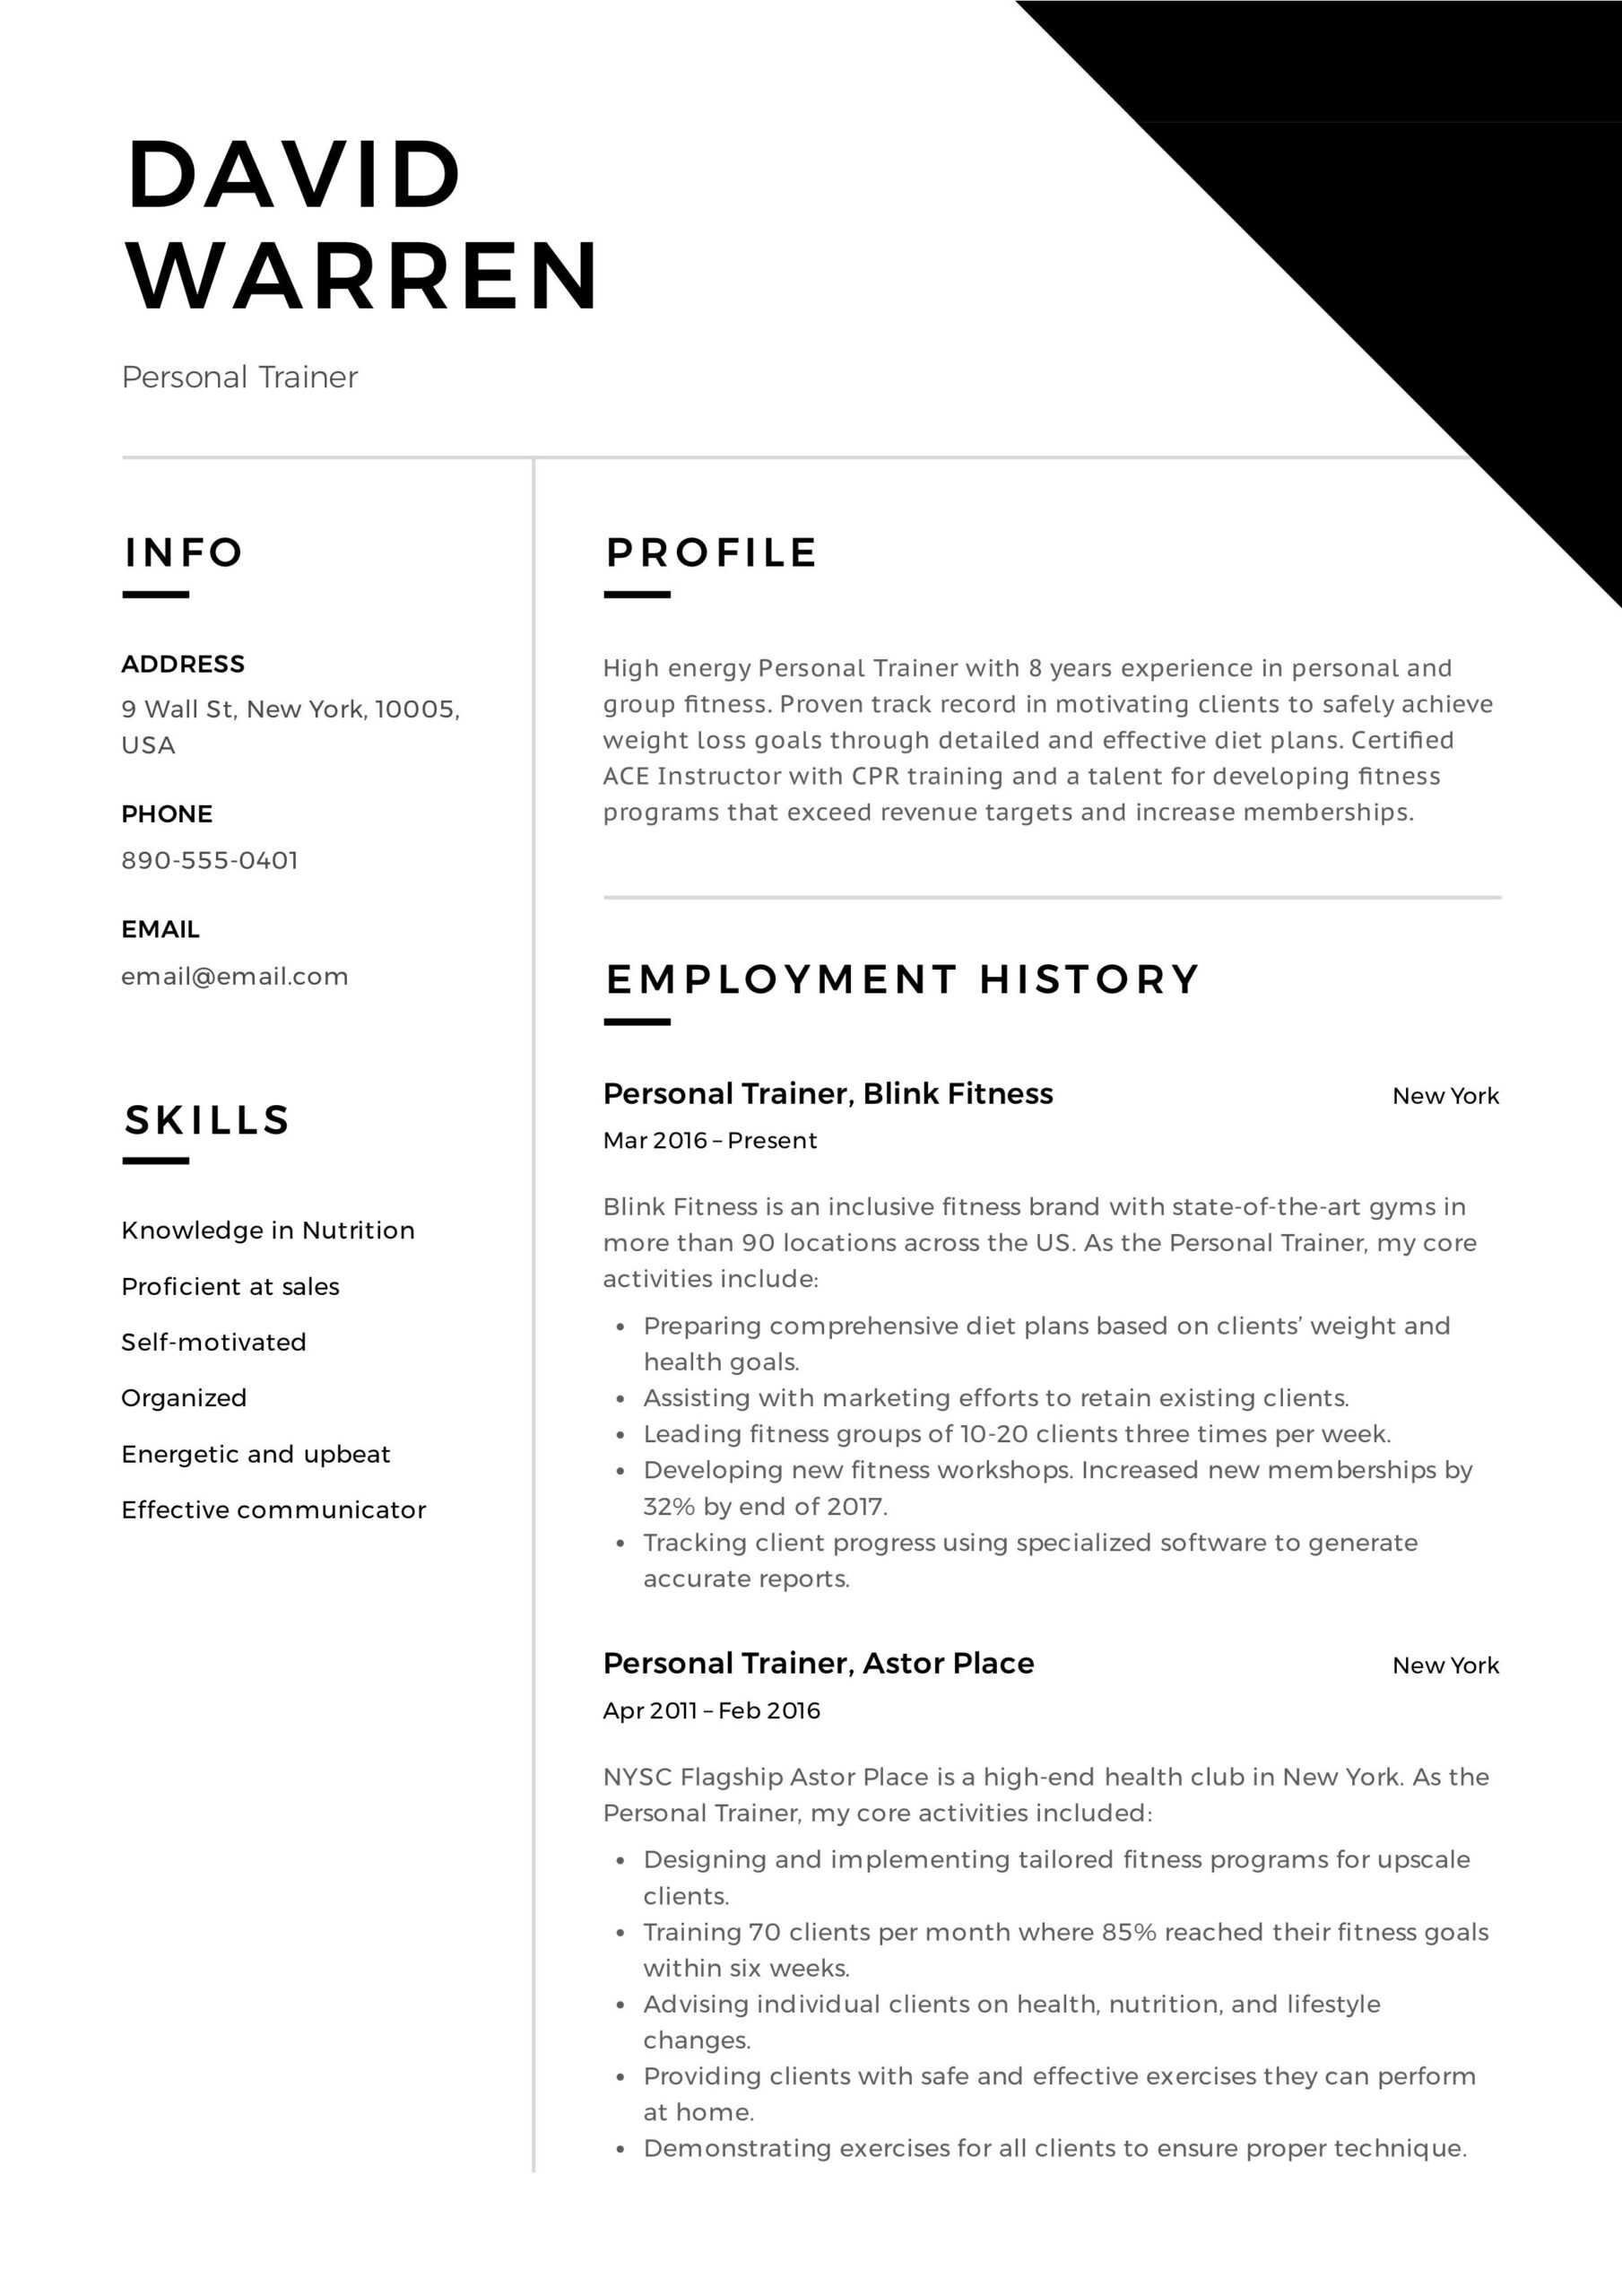 personal trainer resume event planner professional examples sample associates degree Resume Personal Trainer Resume Sample